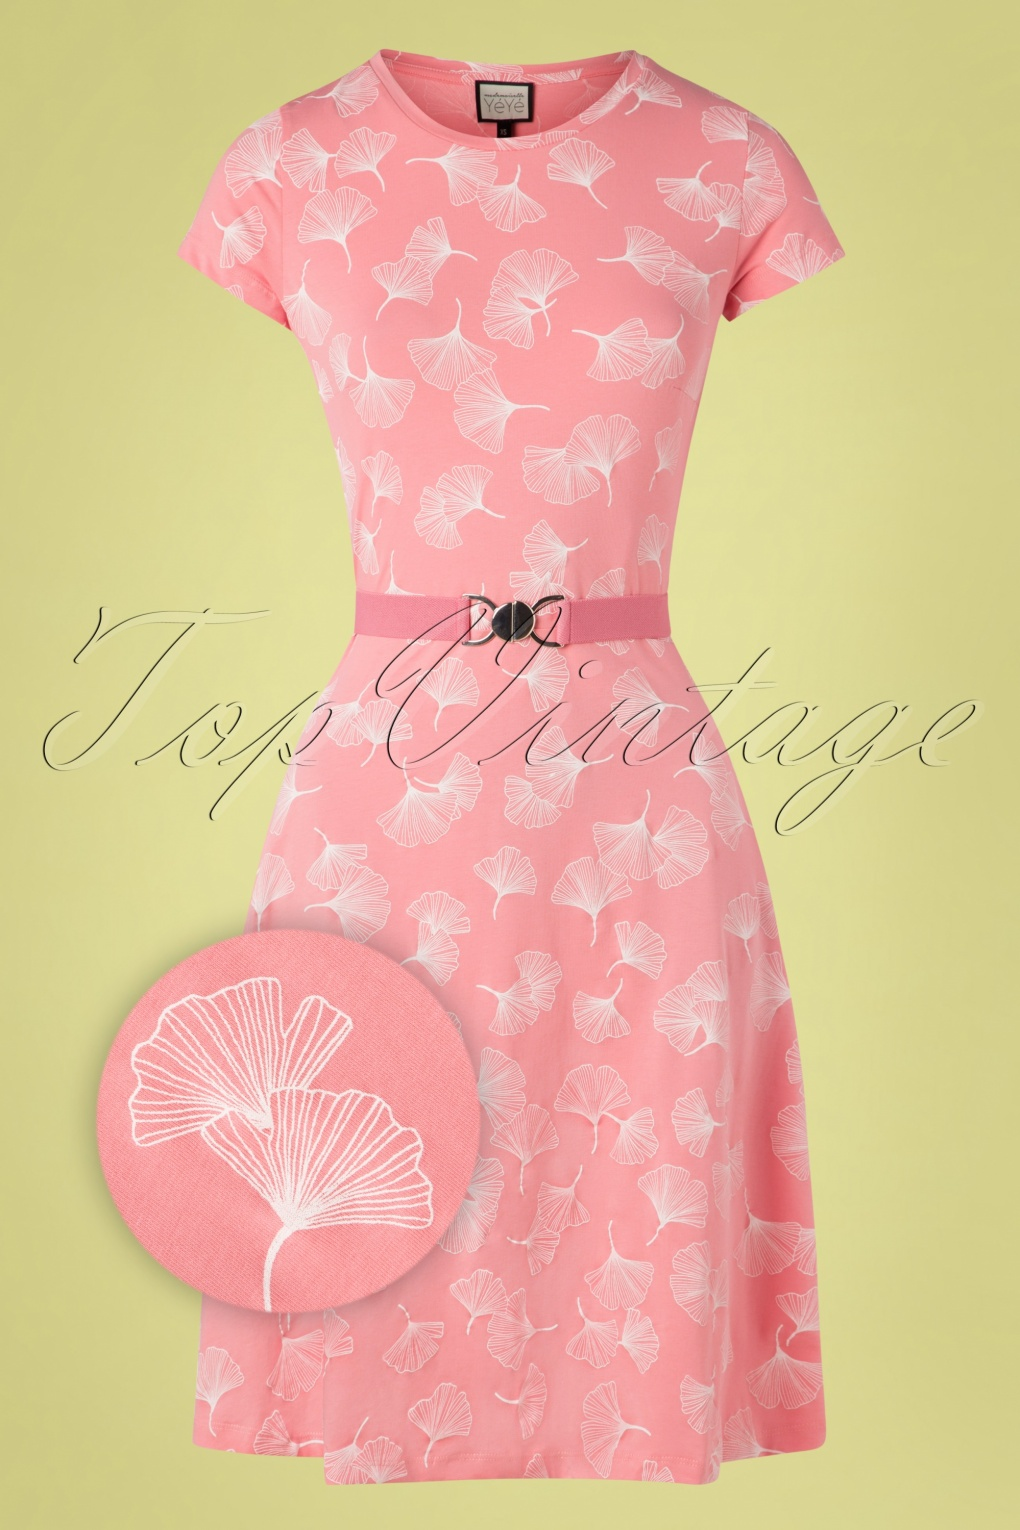 60s Dresses | 1960s Dresses Mod, Mini, Hippie 60s Oh Yeah Ginko Leaves Dress in Pink £78.92 AT vintagedancer.com